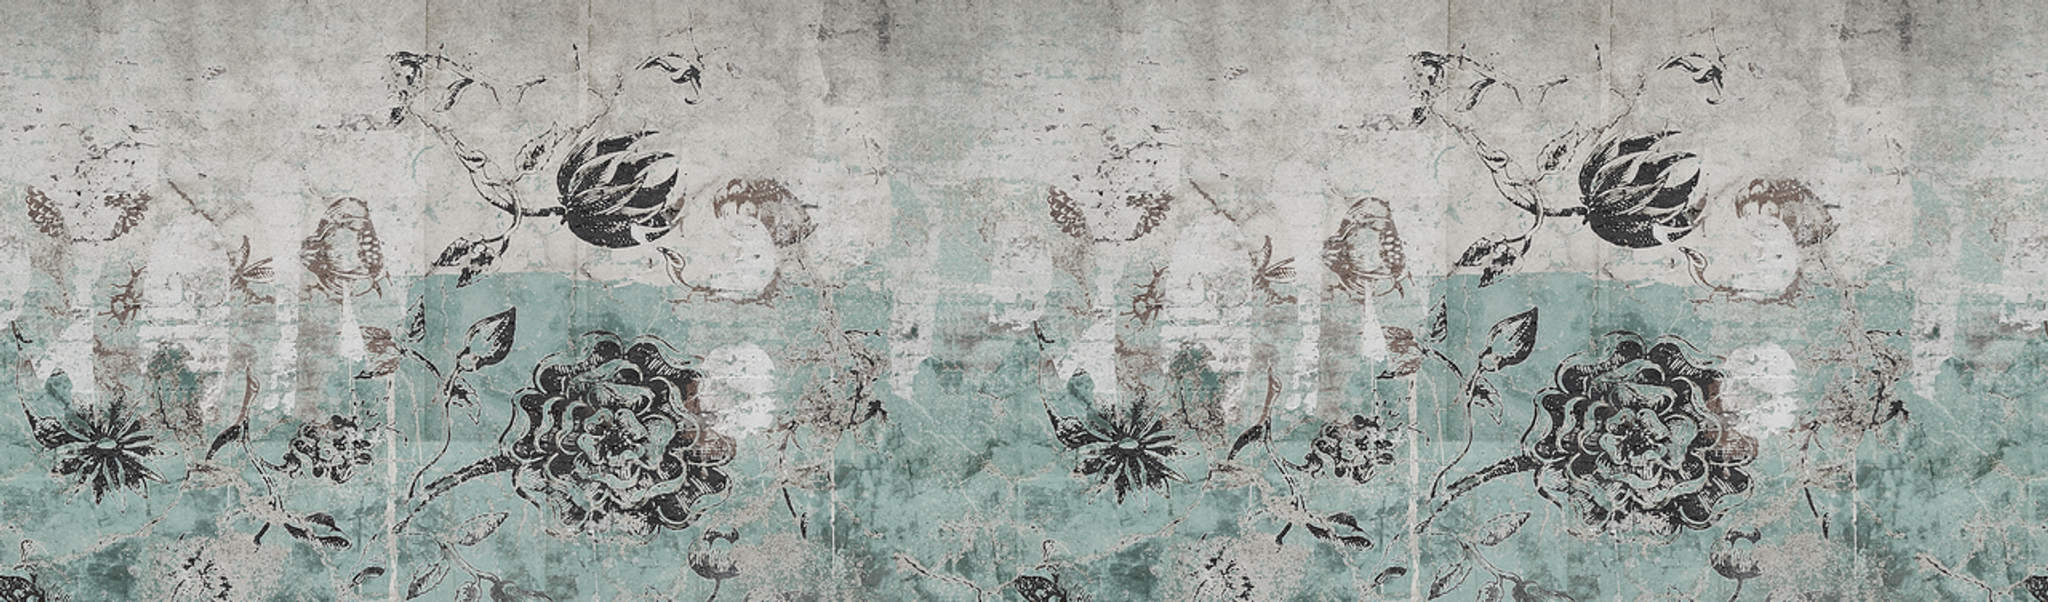 Wallpaper - Botanical Graffiti